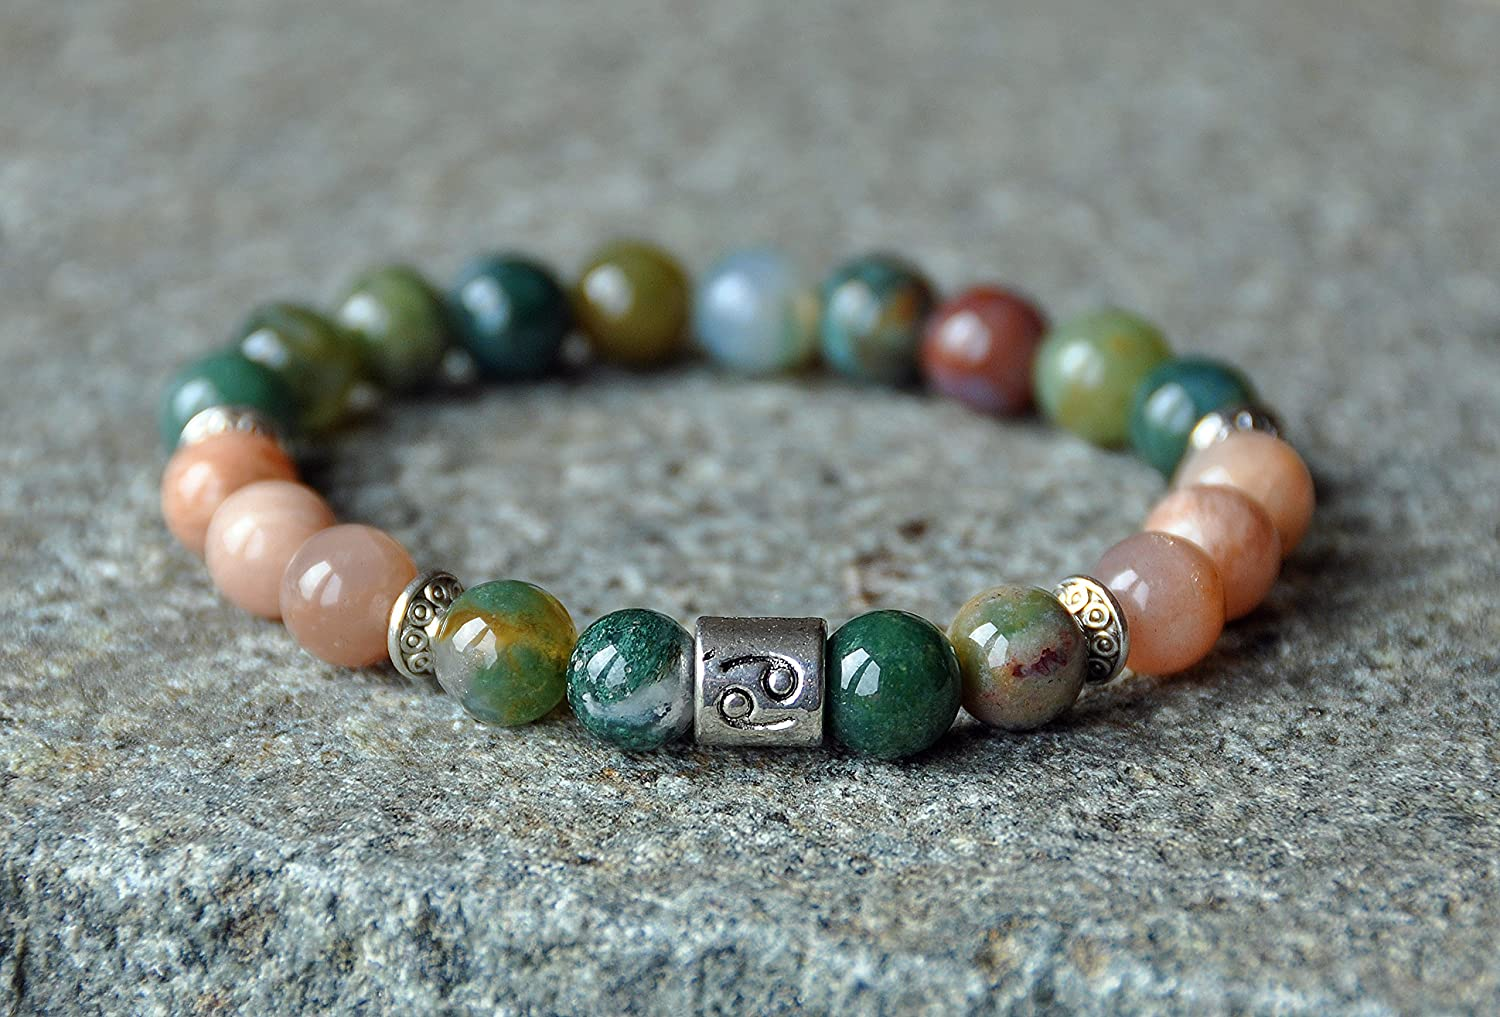 Gemini Zodiac Self Confidence June Birthstone \u221e Boho Beads Jewelry Gift for her Luck Indian Agate Bar Necklace Suede \u221e Protection